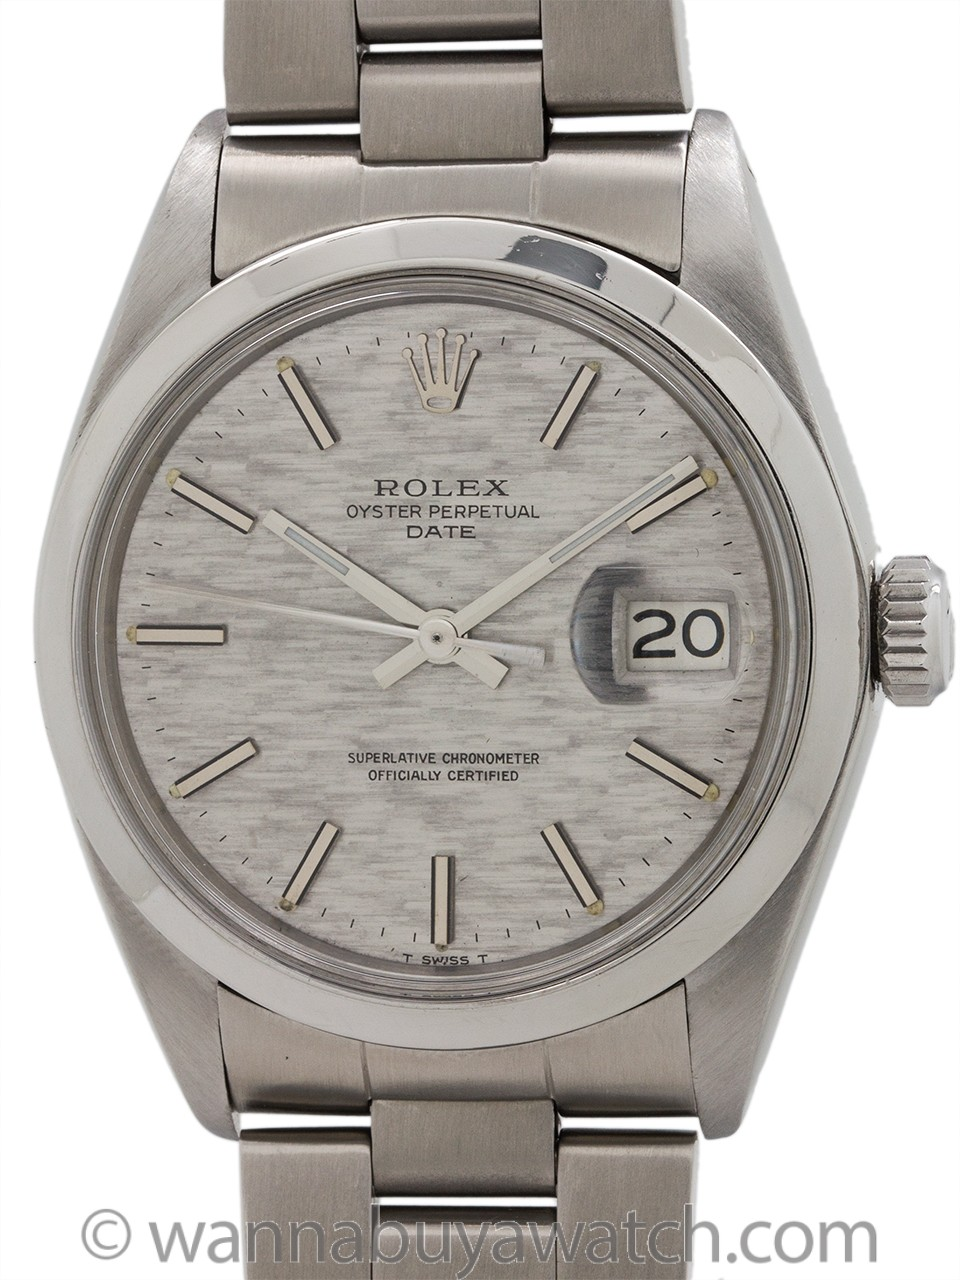 Rolex Oyster Perpetual Date ref 1500 Linen Dial circa 1970